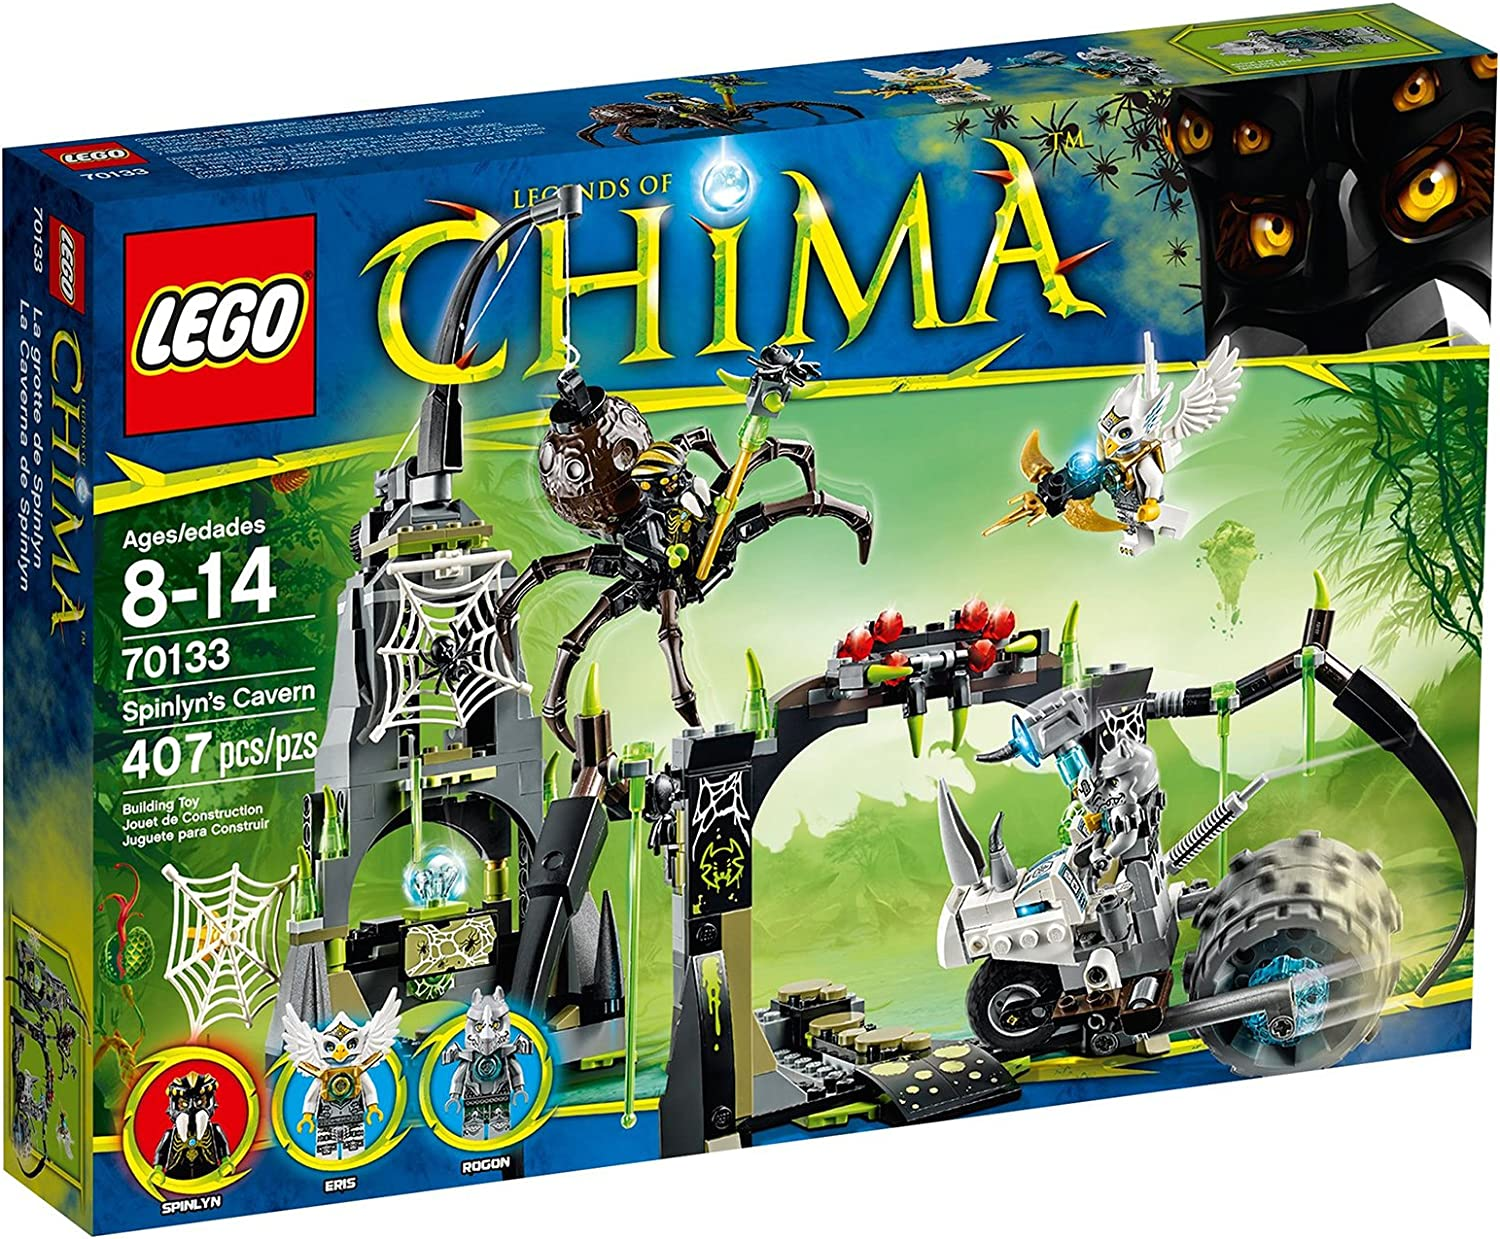 LEGO Chima Spinlyn's Cavern 70133